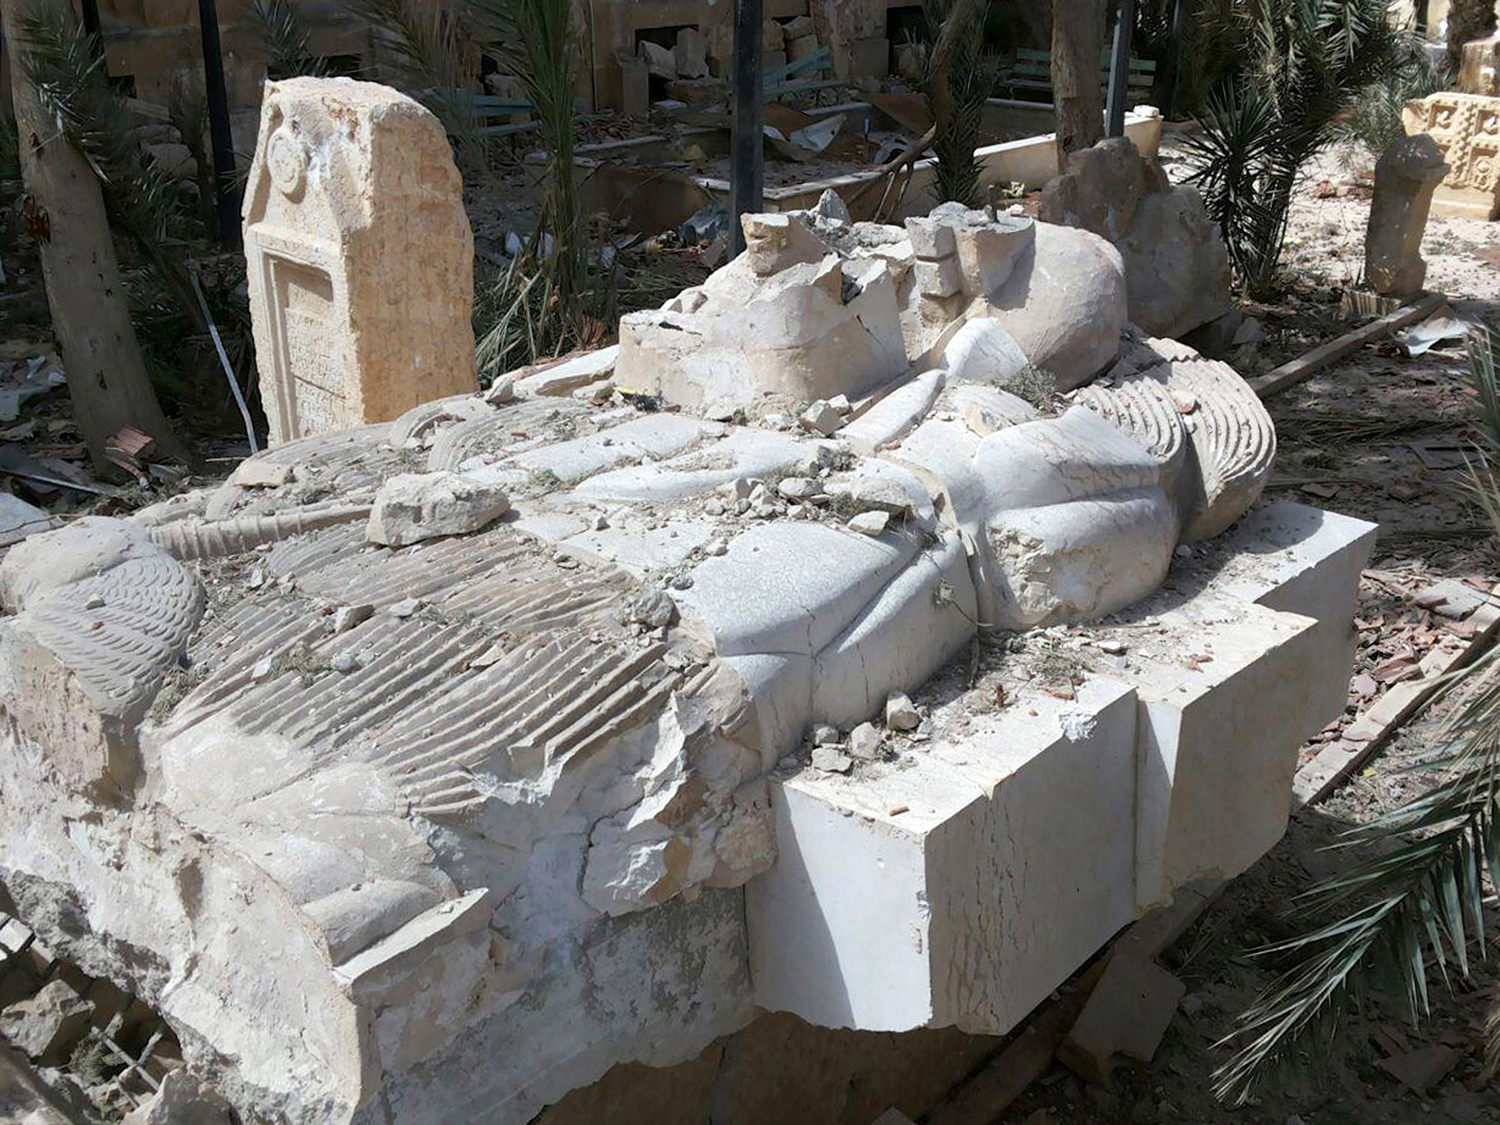 FILE - This file photo released March 27, 2016, by the Syrian official news agency SANA, shows a destroyed statue outside the damaged Palmyra Museum, in Palmyra city, central Syria. Palmyra, the archaeological gem that Islamic State fighters retook Sunday, Dec. 11, 2016, from Syrian troops, is a desert oasis surrounded by palm trees, and a UNESCO world heritage site, that boasts 2,000-year-old towering Roman-era colonnades and priceless artifacts. It is also a strategic crossroads linking the Syrian capital, Damascus, with the country's east and neighboring Iraq. (SANA via AP, File)